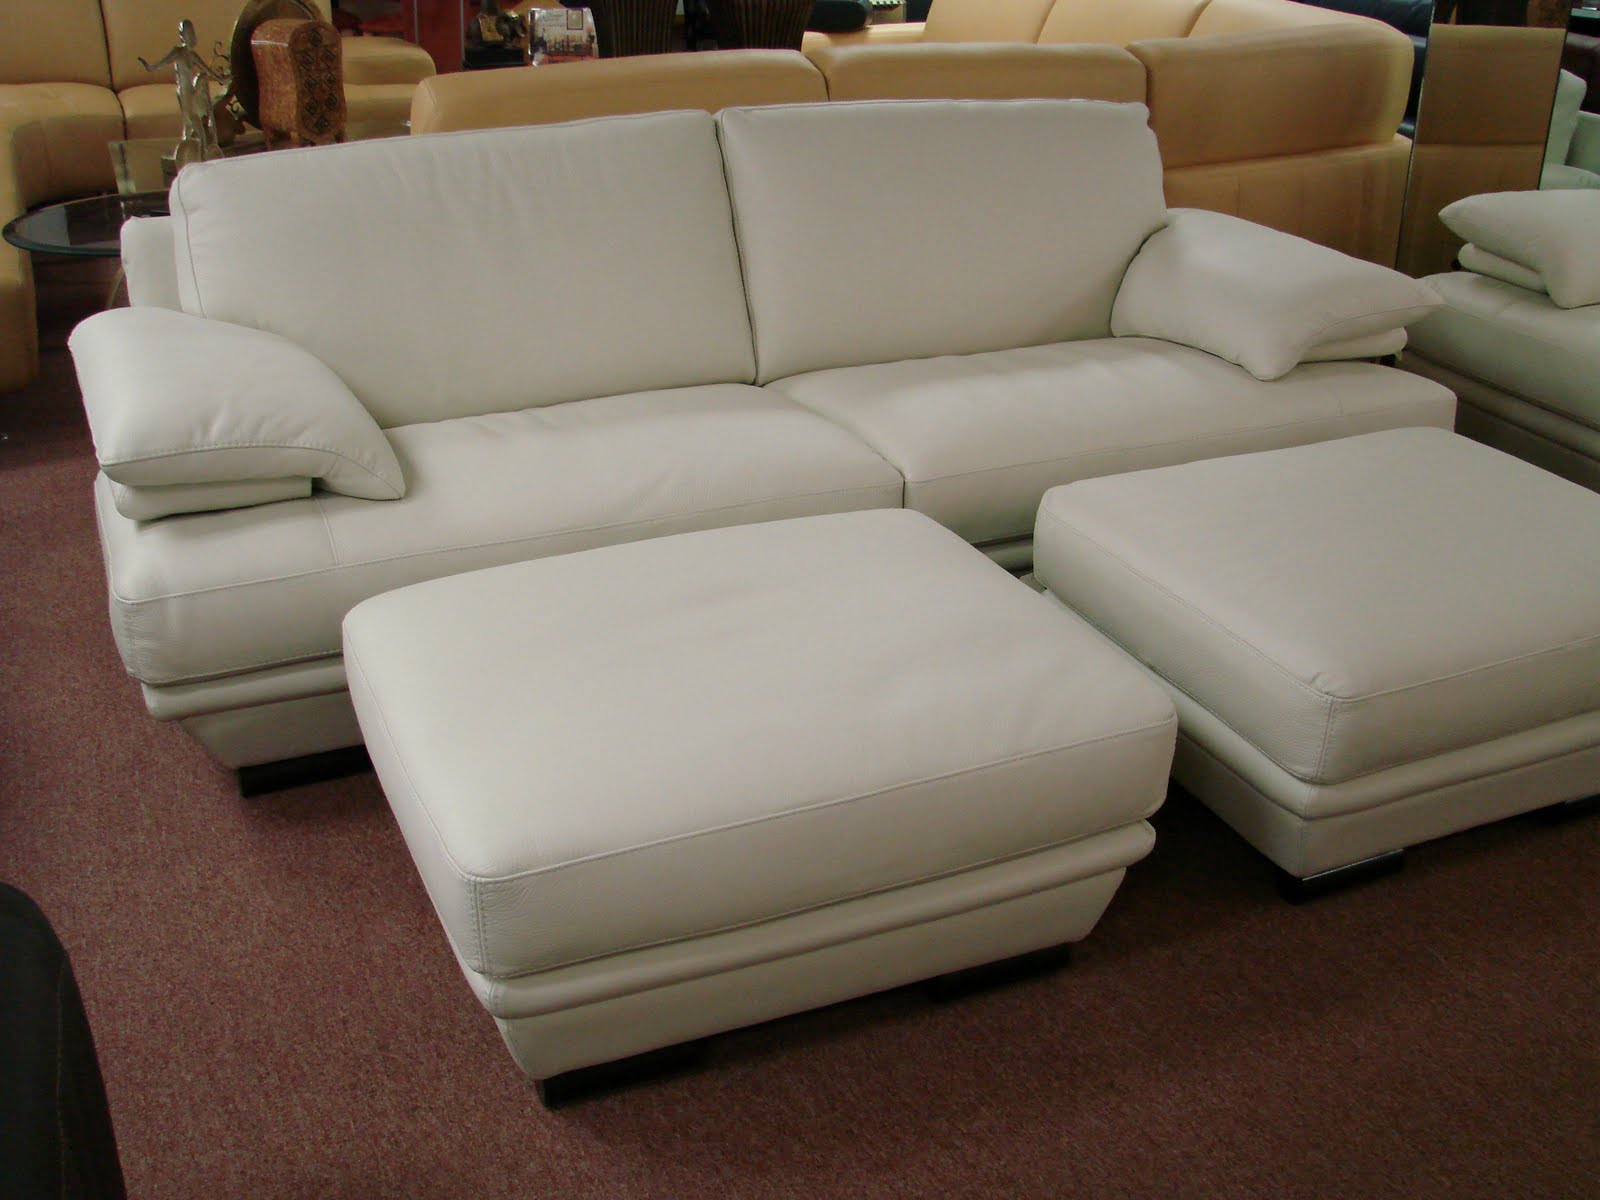 sofa covers online dubai overstuffed bed natuzzi